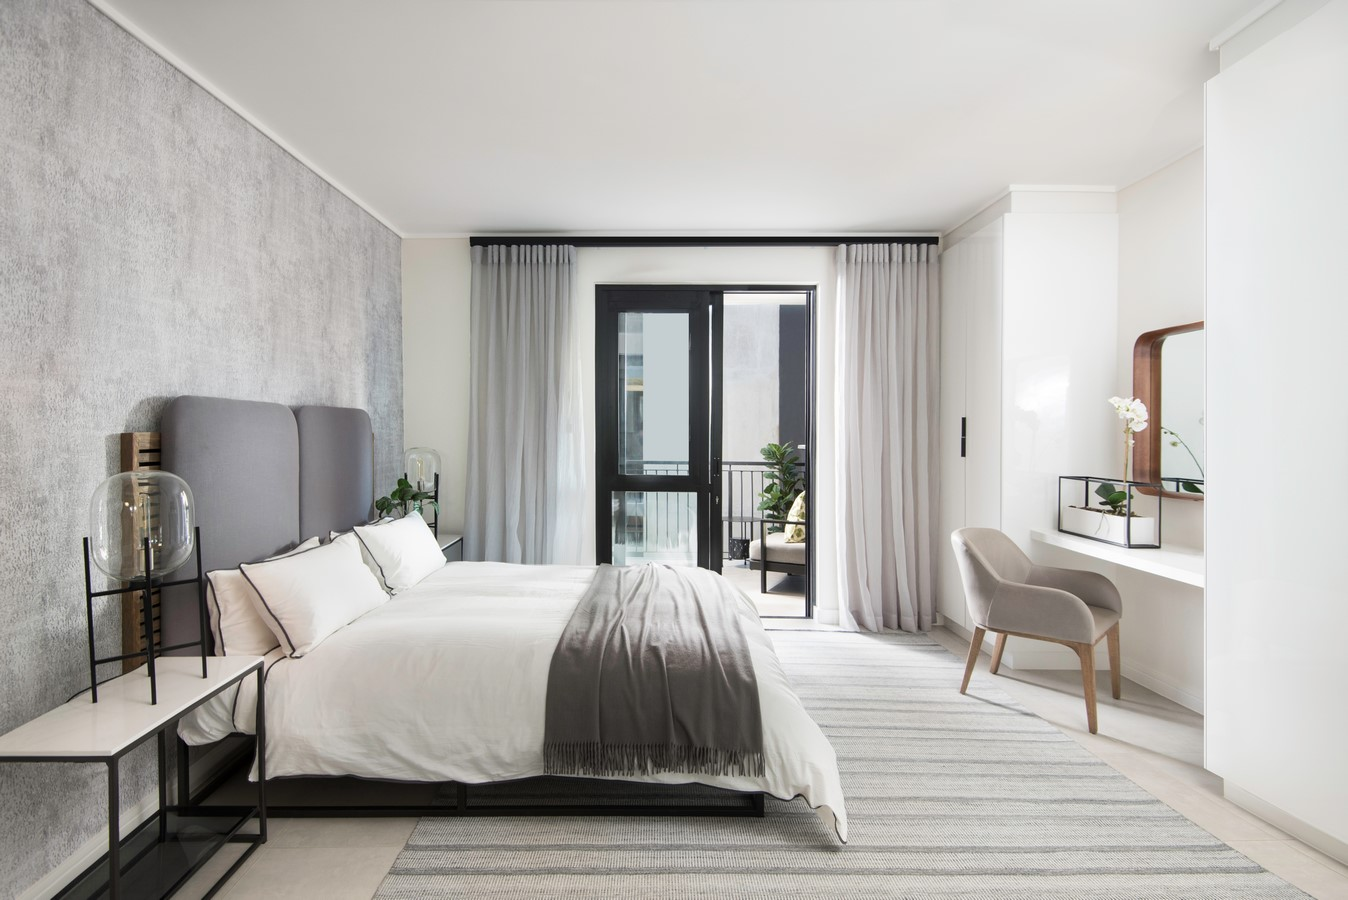 The Emerald Hyde Park By Daffonchio and Associates Architects - Sheet2